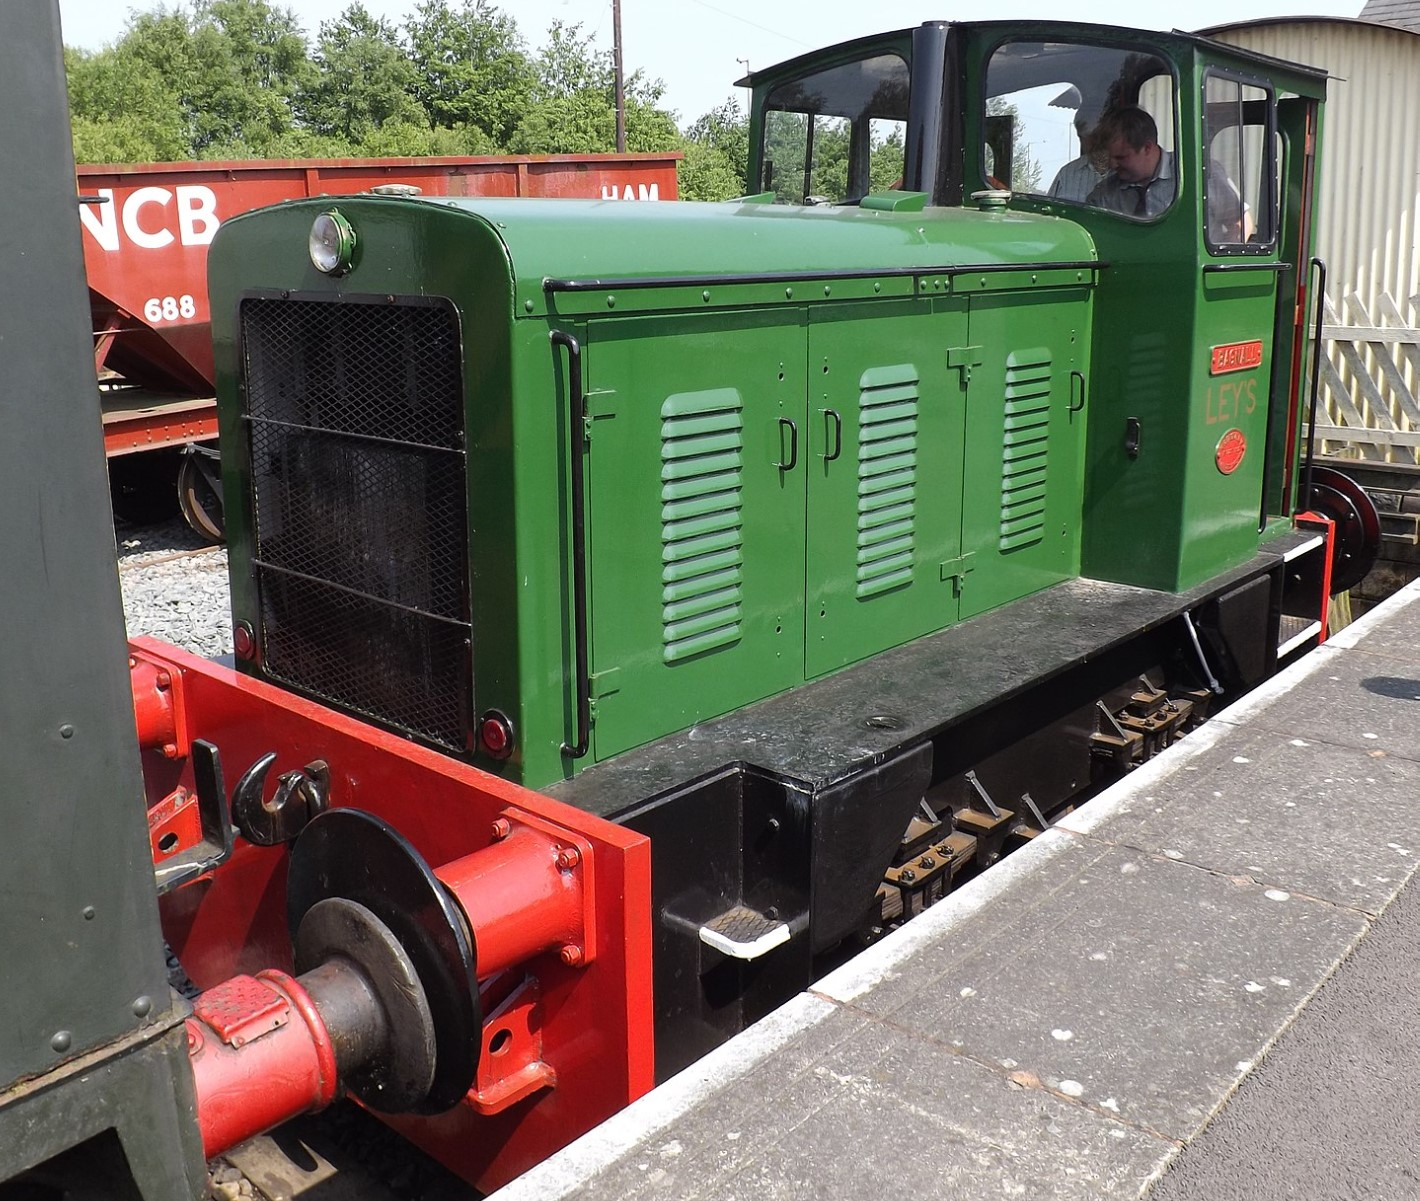 320-7 at the Chasewater Railway in May 2018. ©THTRail2013